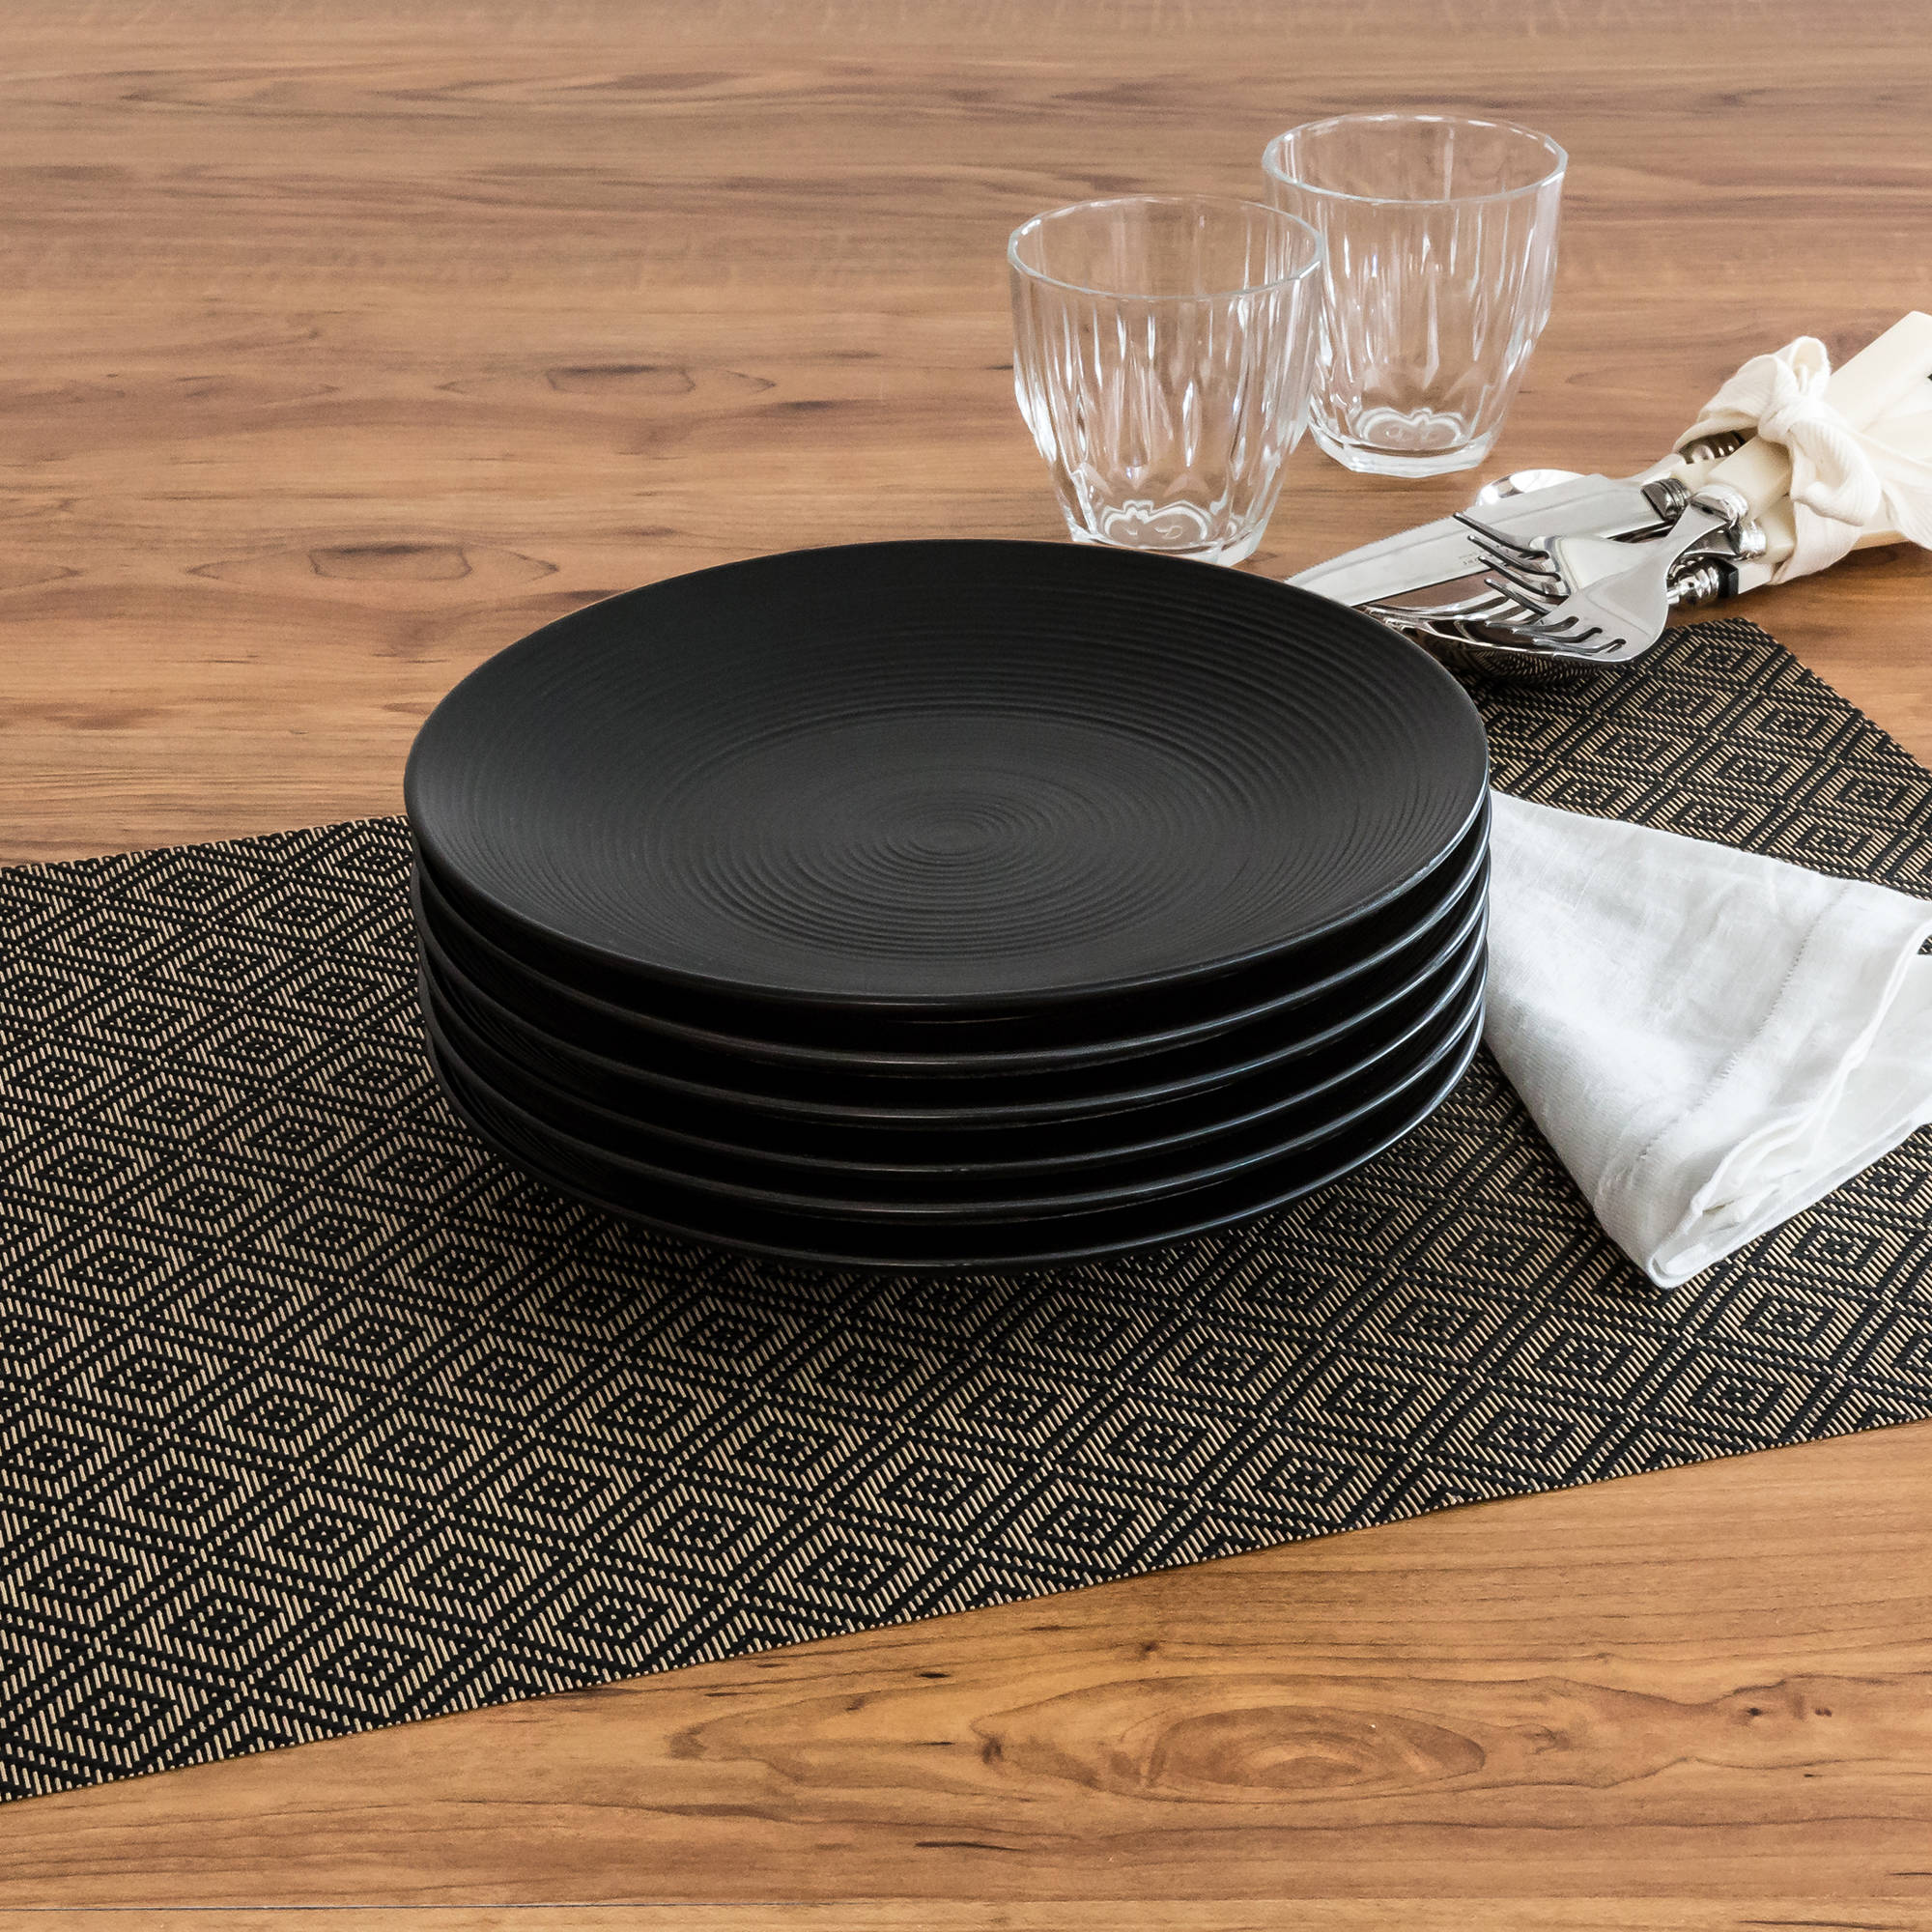 Better Homes and Gardens Matte Swirl Salad Plates, Black, Set of 6